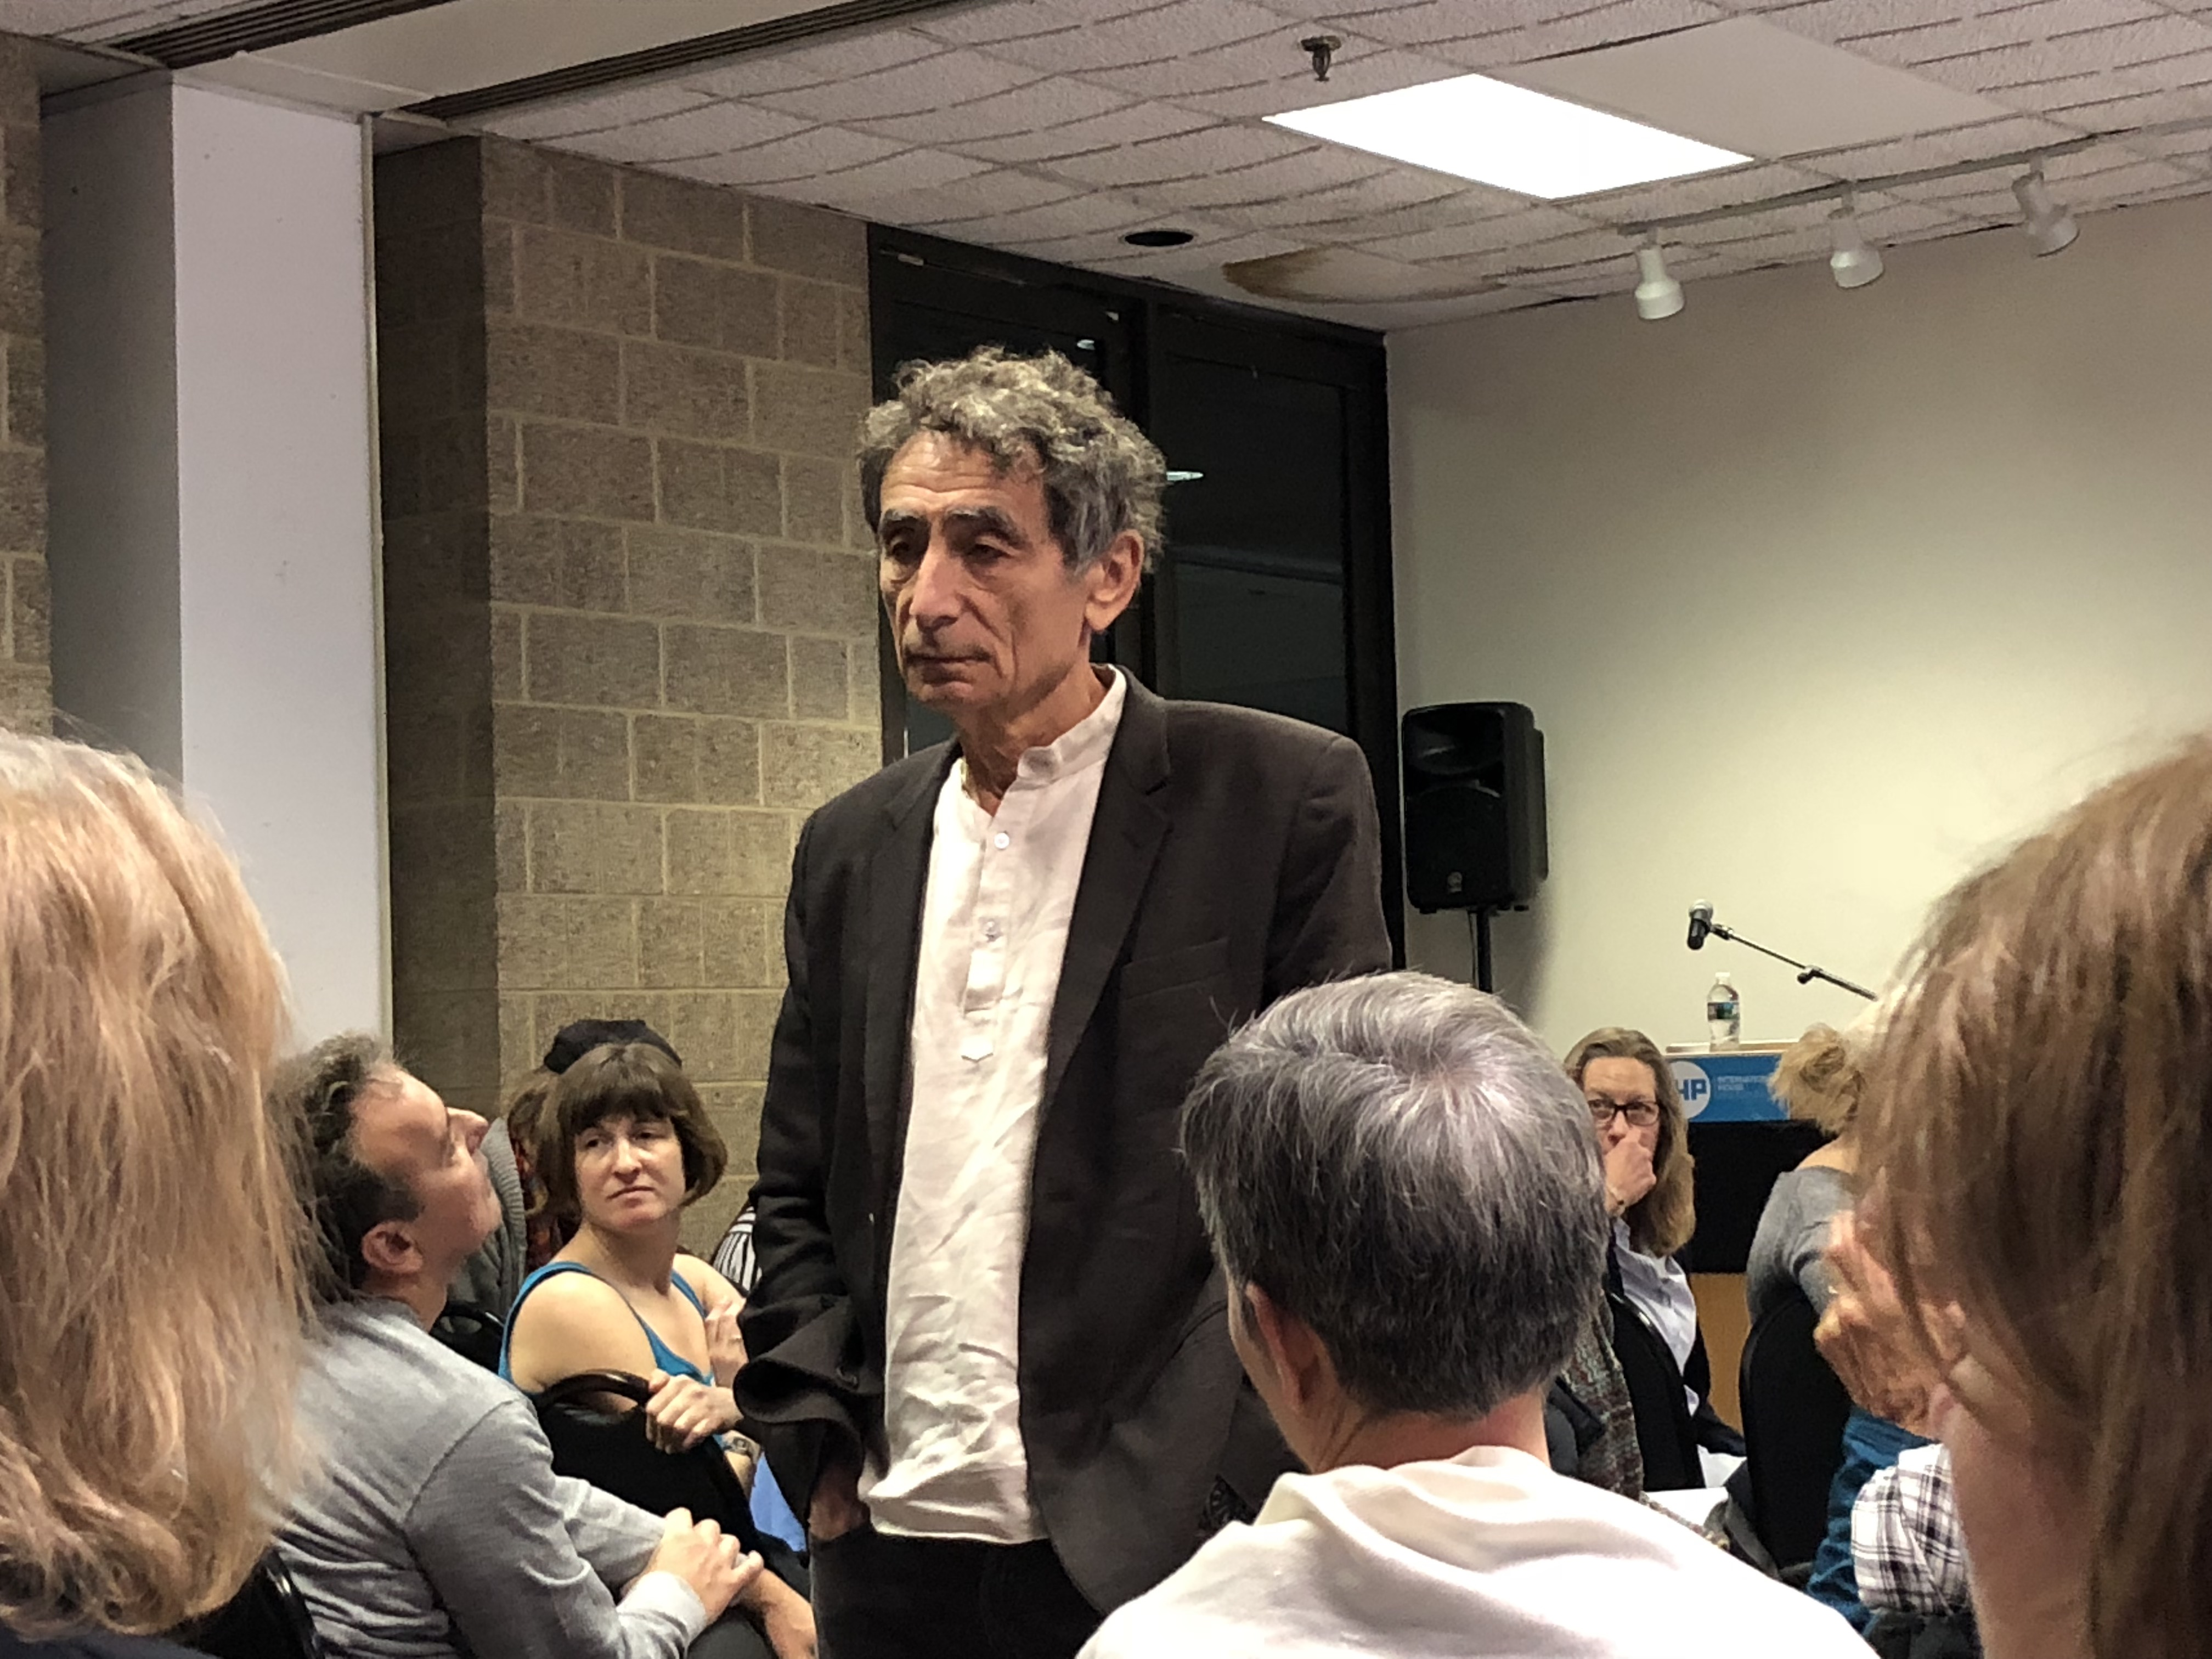 Canadian Hungarian-born physician and bestselling author Gabor Maté in Philadelphia for a symposium on addiction and trauma hosted by Mural Arts, October 29, 2018